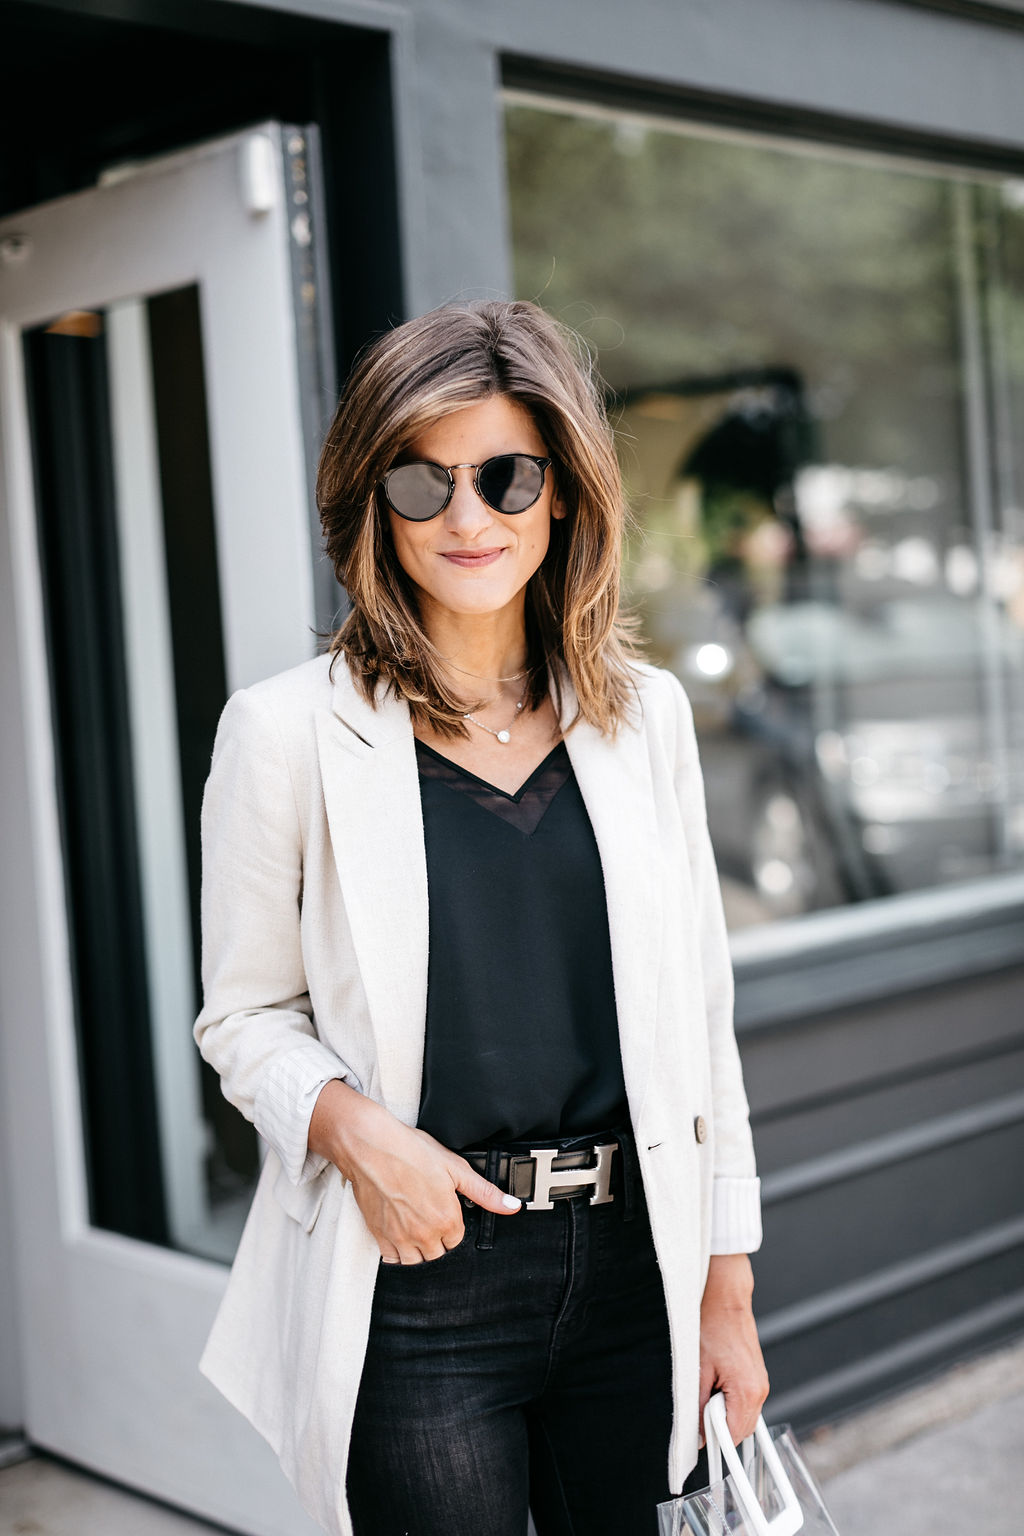 brighton keller wearing all black outfit with Hermes silver belt linen blazer